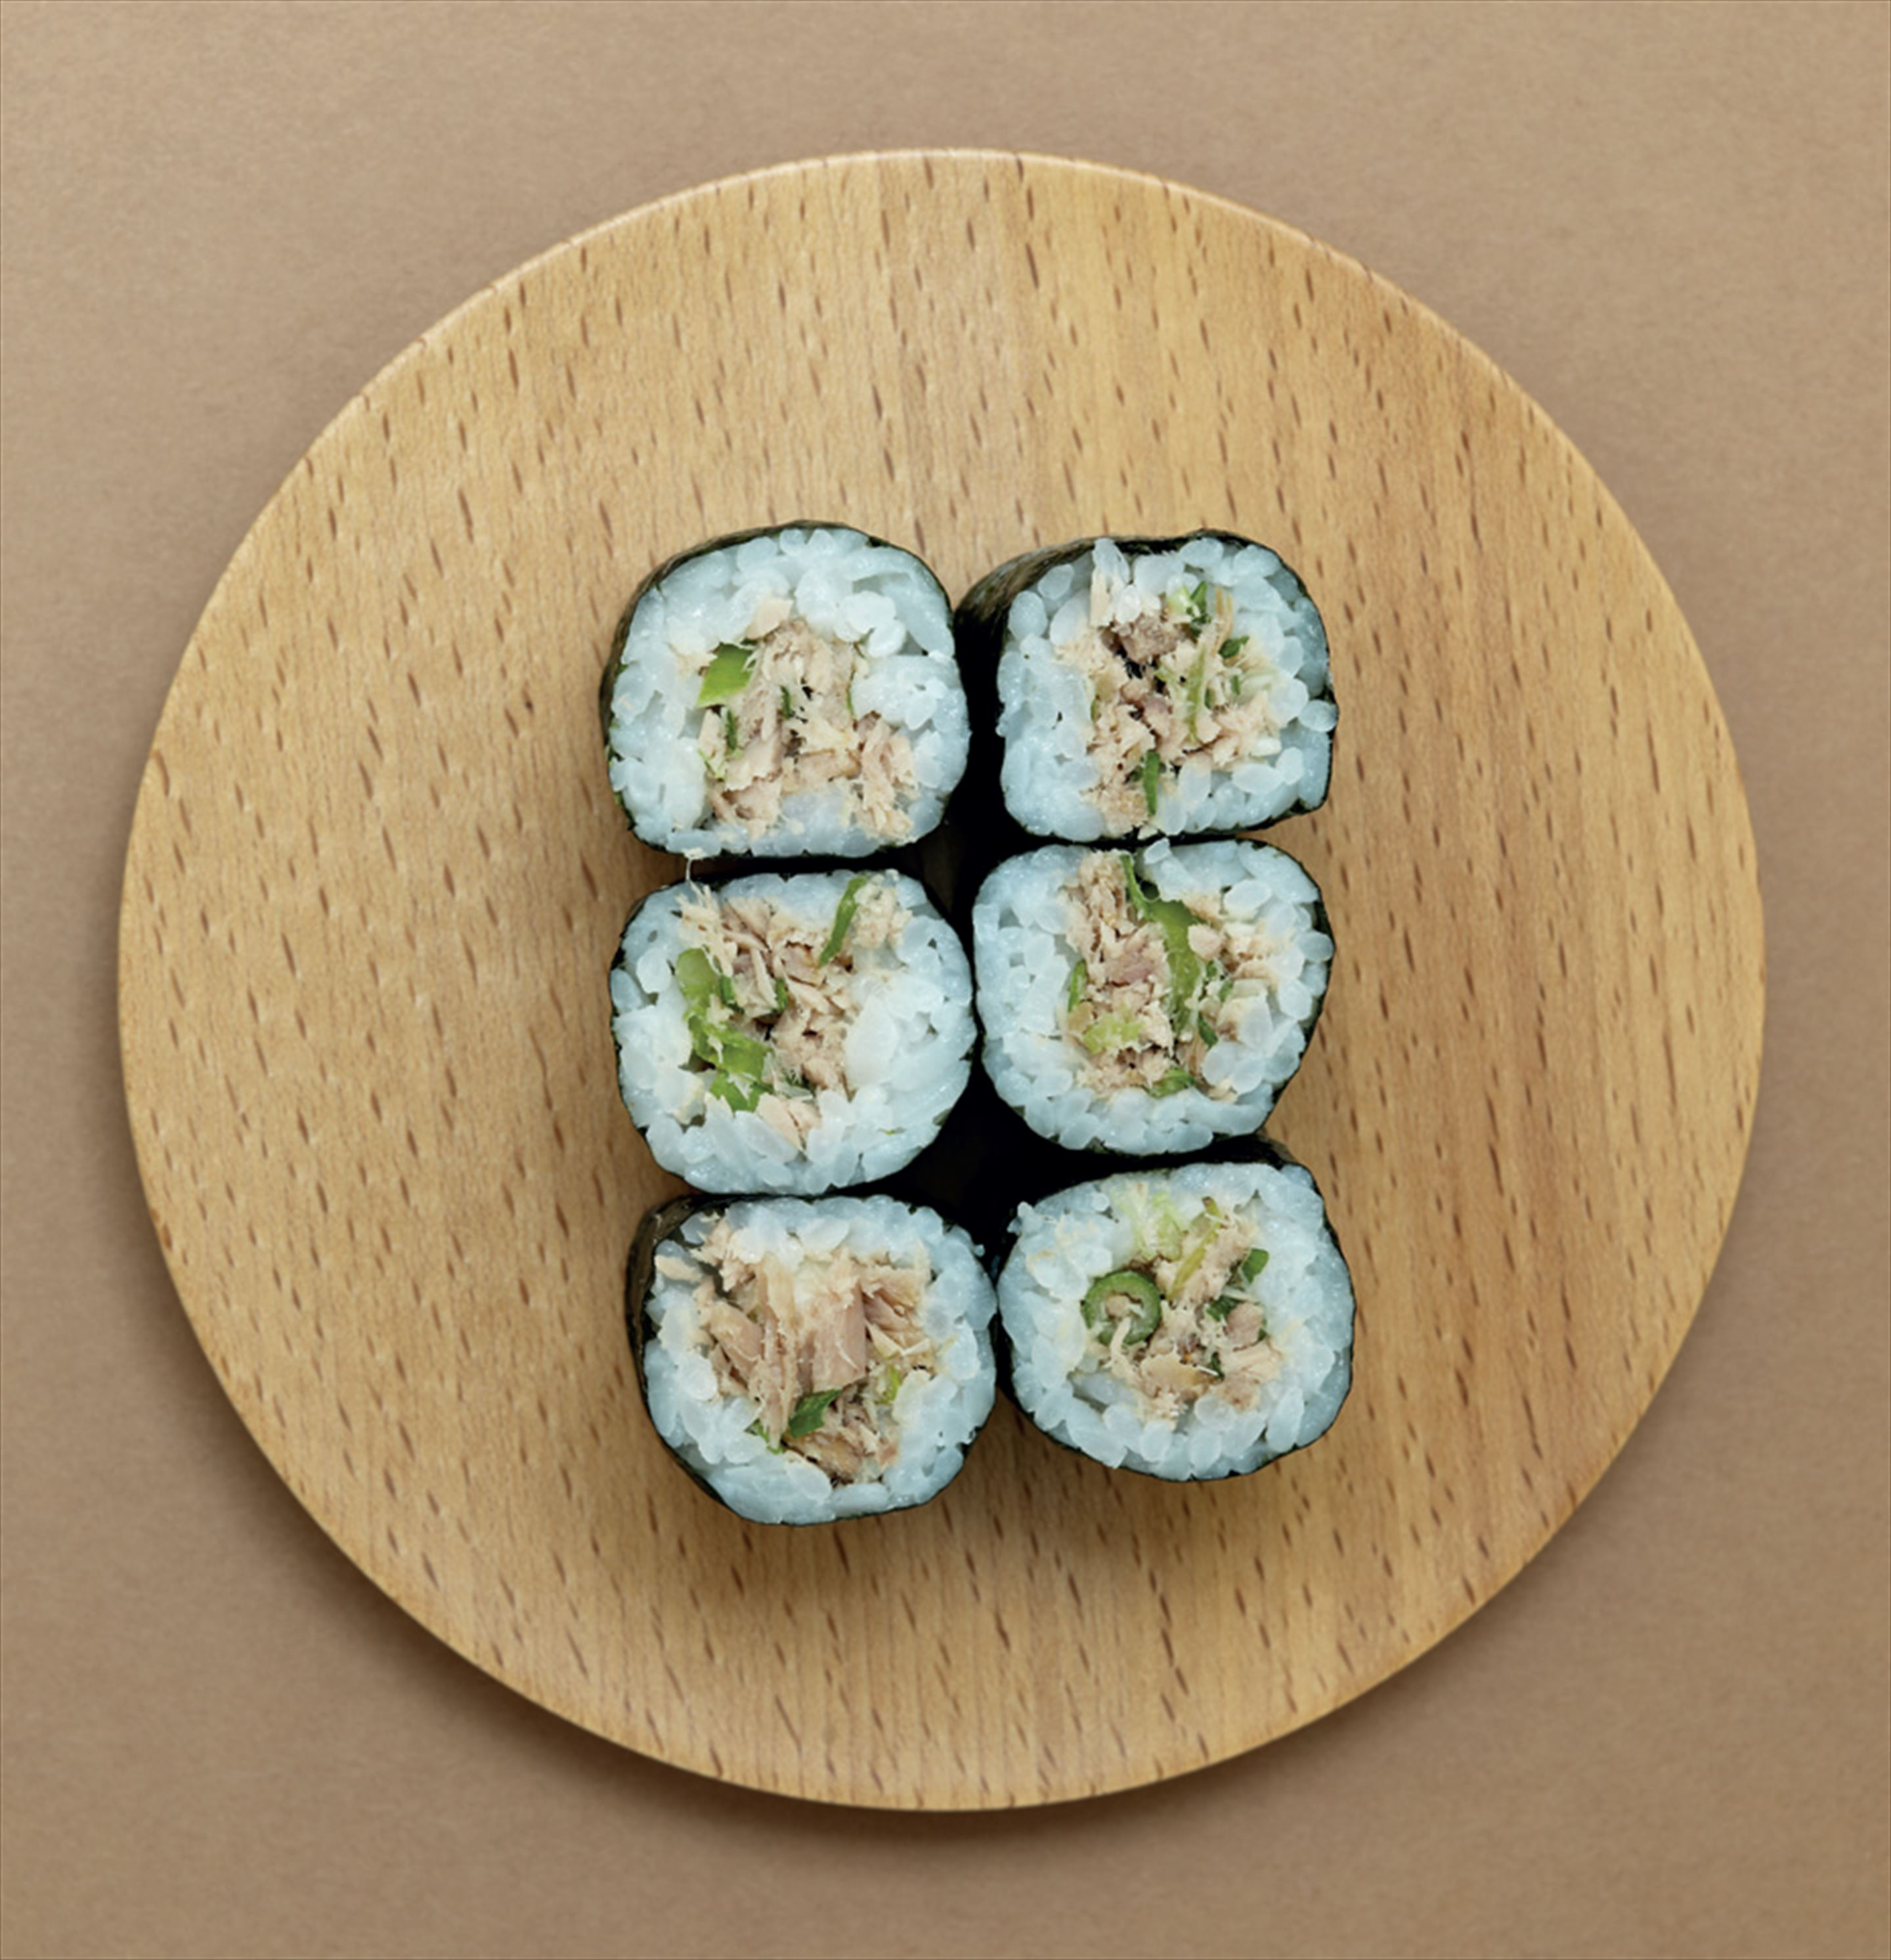 Canned tuna and spring onion hosomaki rolls